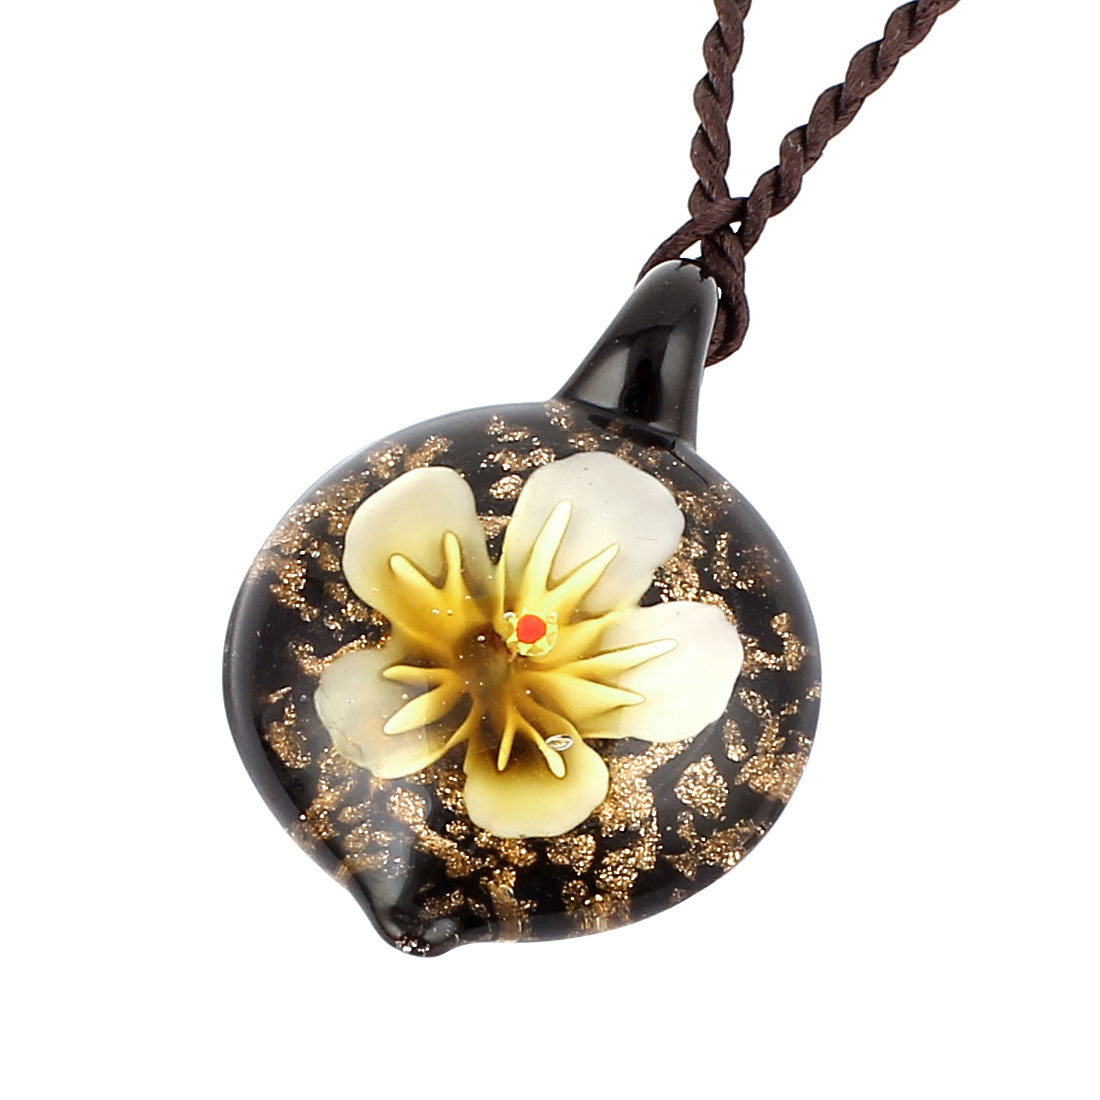 Shiny Powder Round Glass Pressed Flower Design Pendant Necklace Beige Black